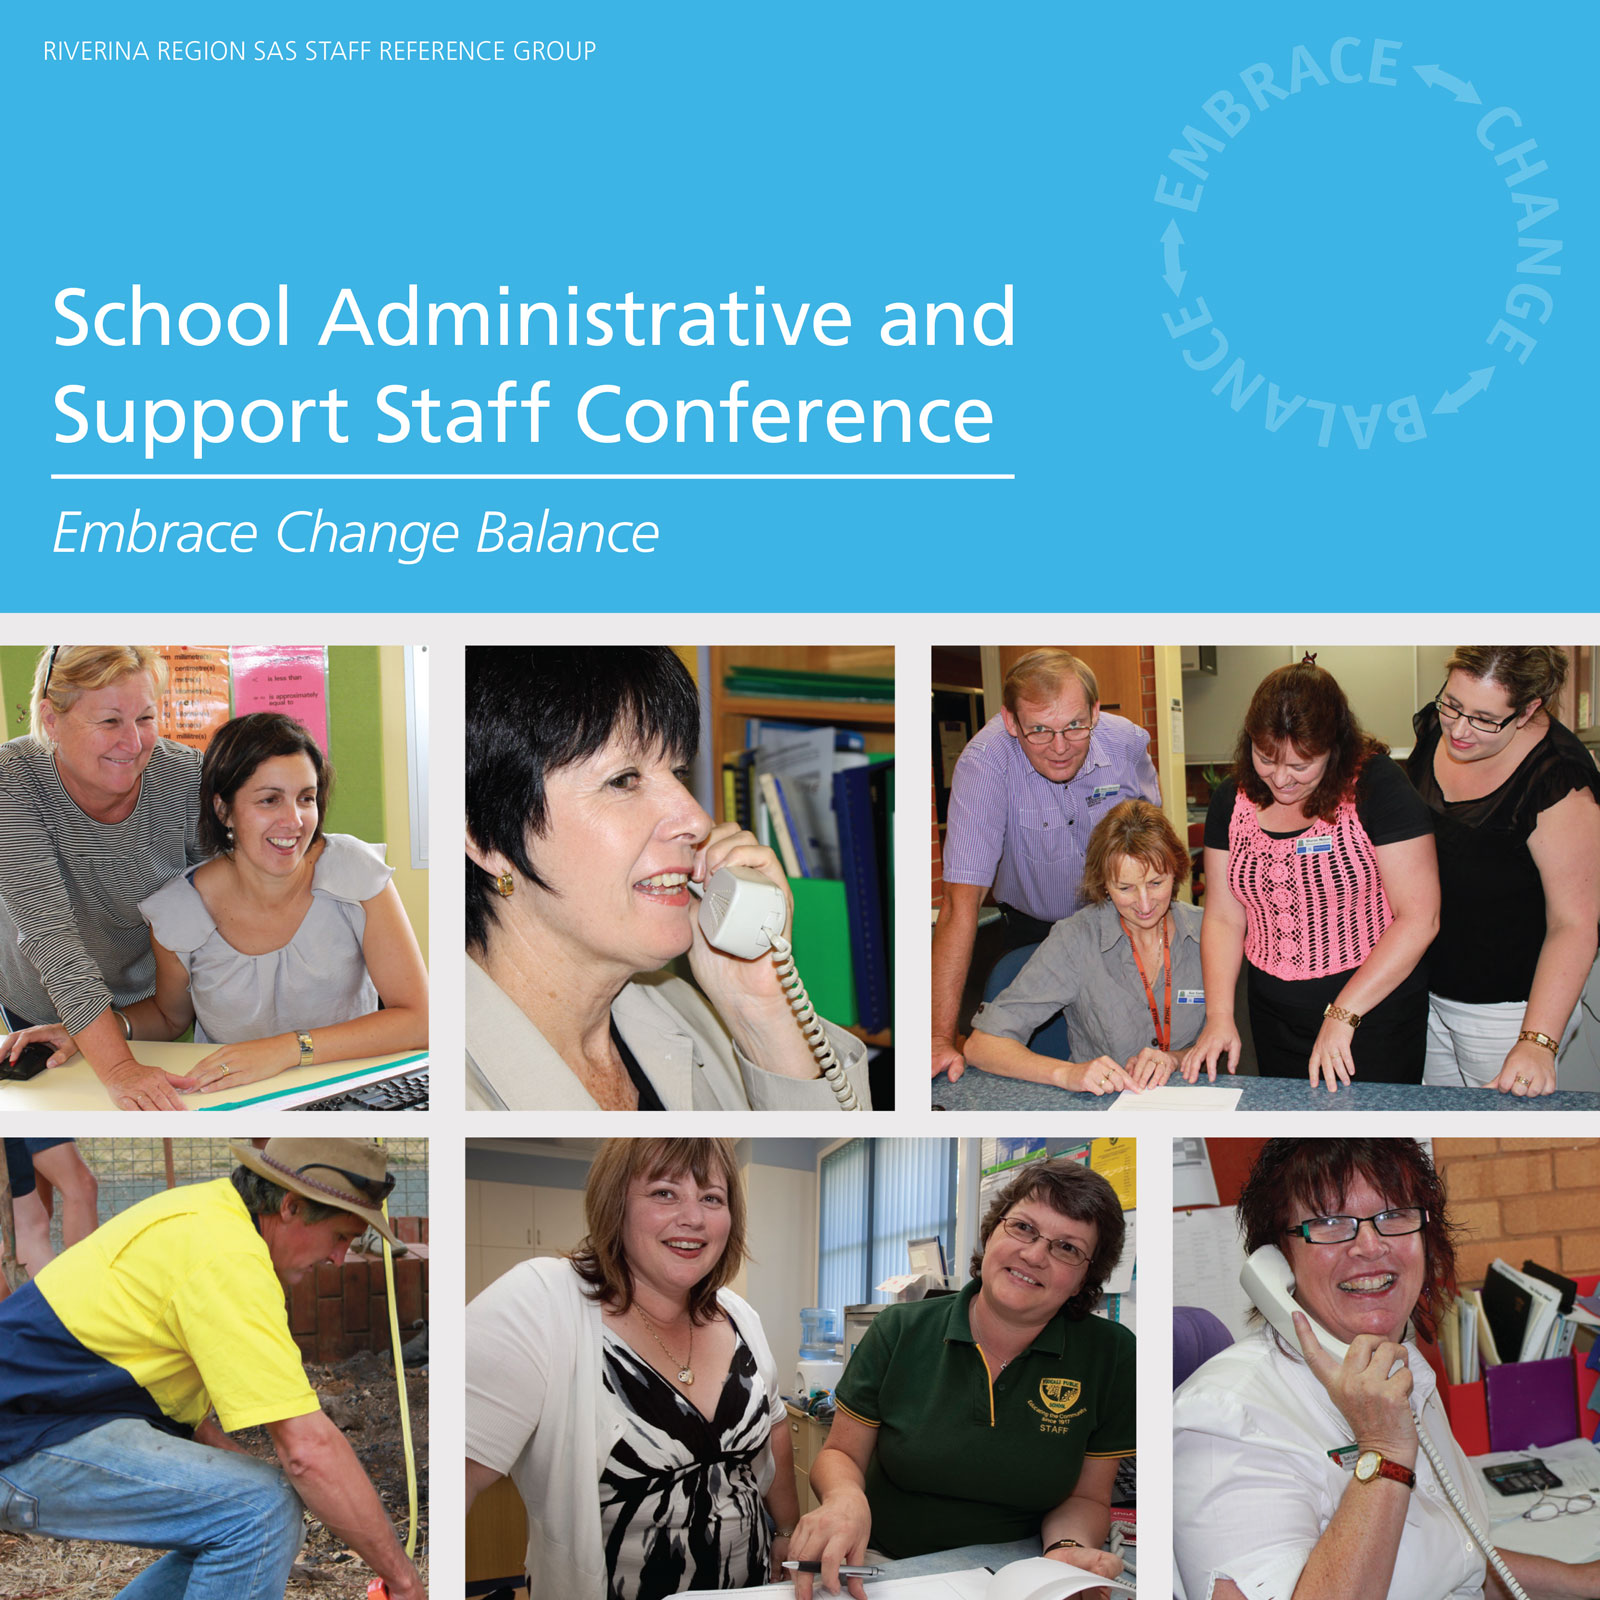 School Administrative and Support Staff Conference